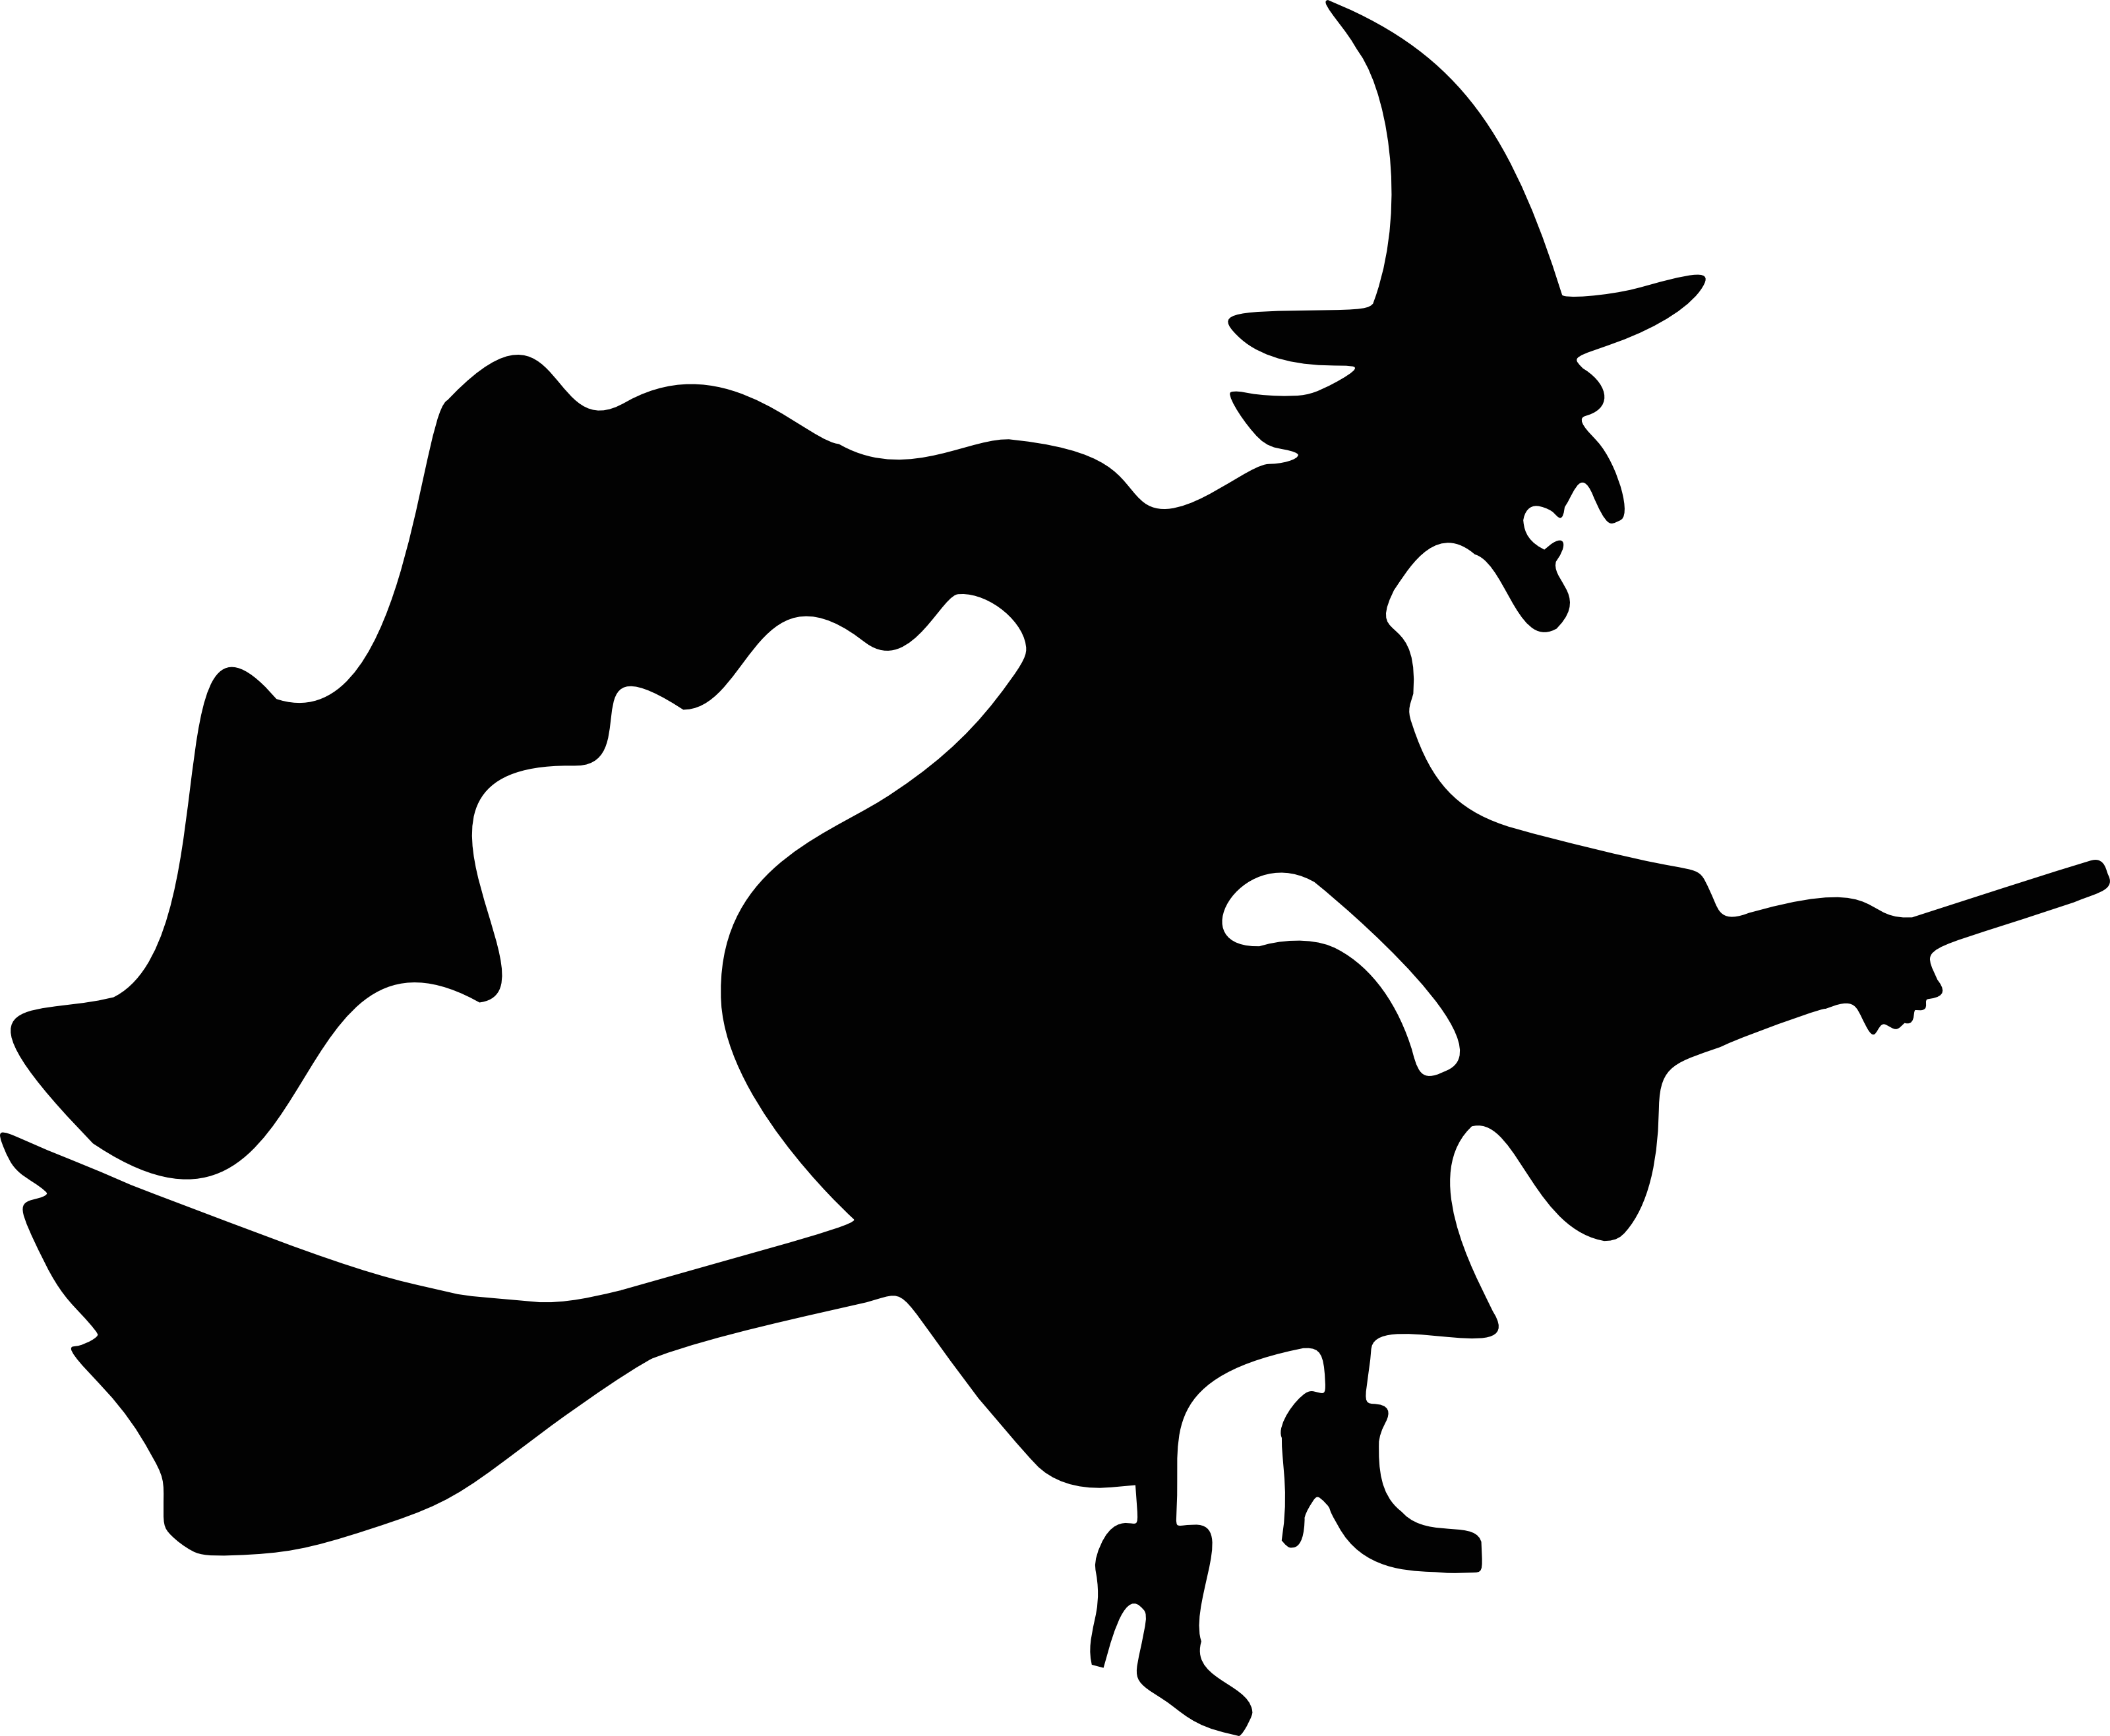 witch flying silhouette free halloween vector clipart illustration rh free clipartof com halloween vector art halloween vector art free